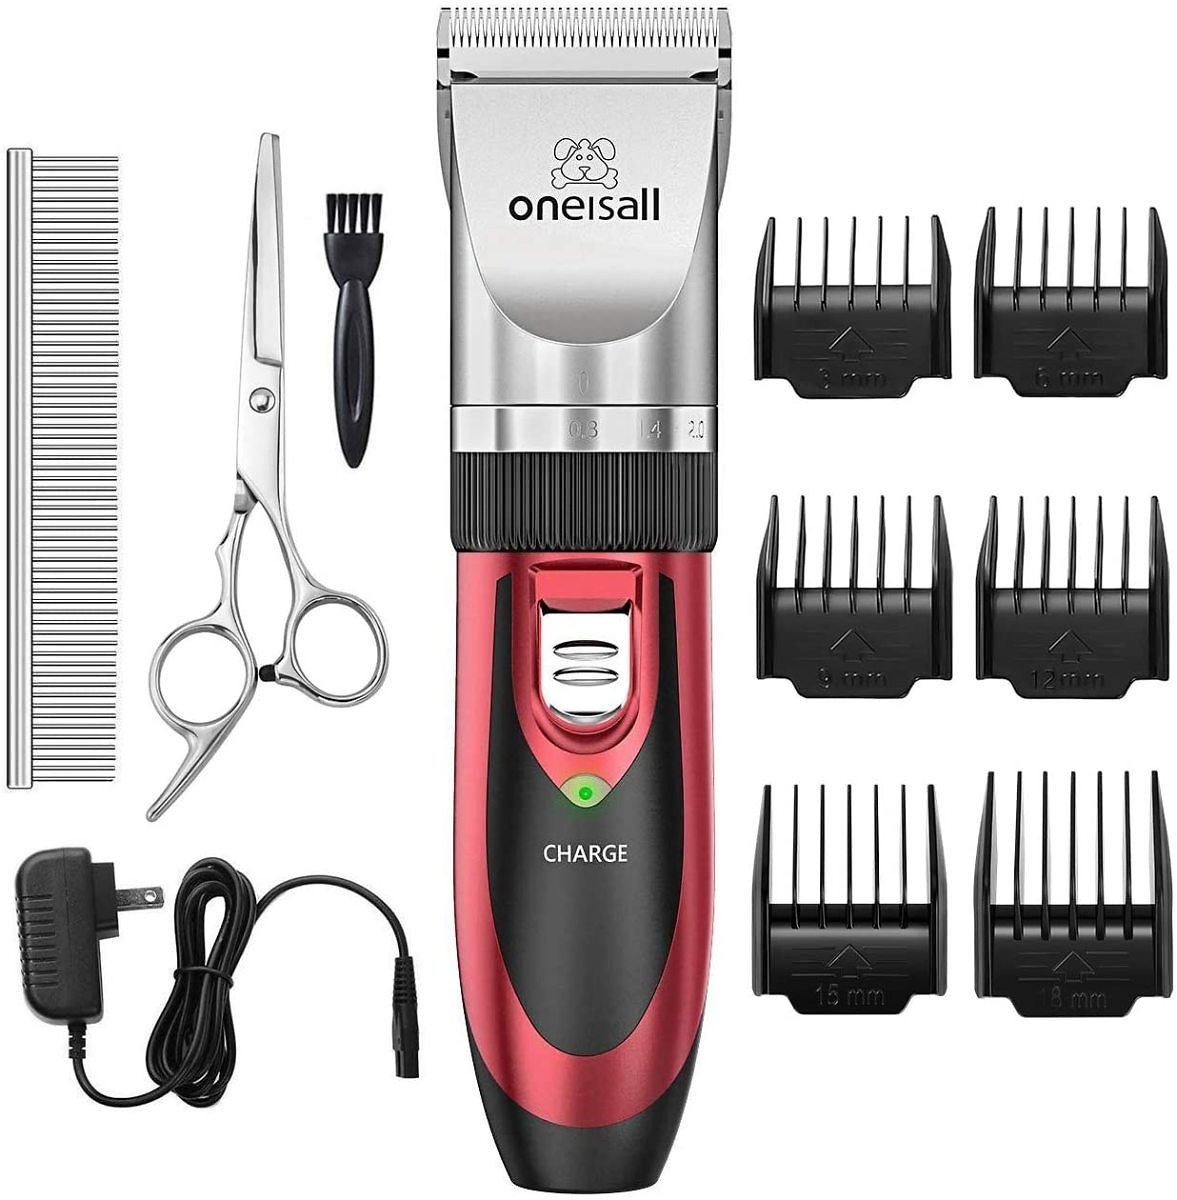 Up to 28% Off On Oneisall Pet Clippers